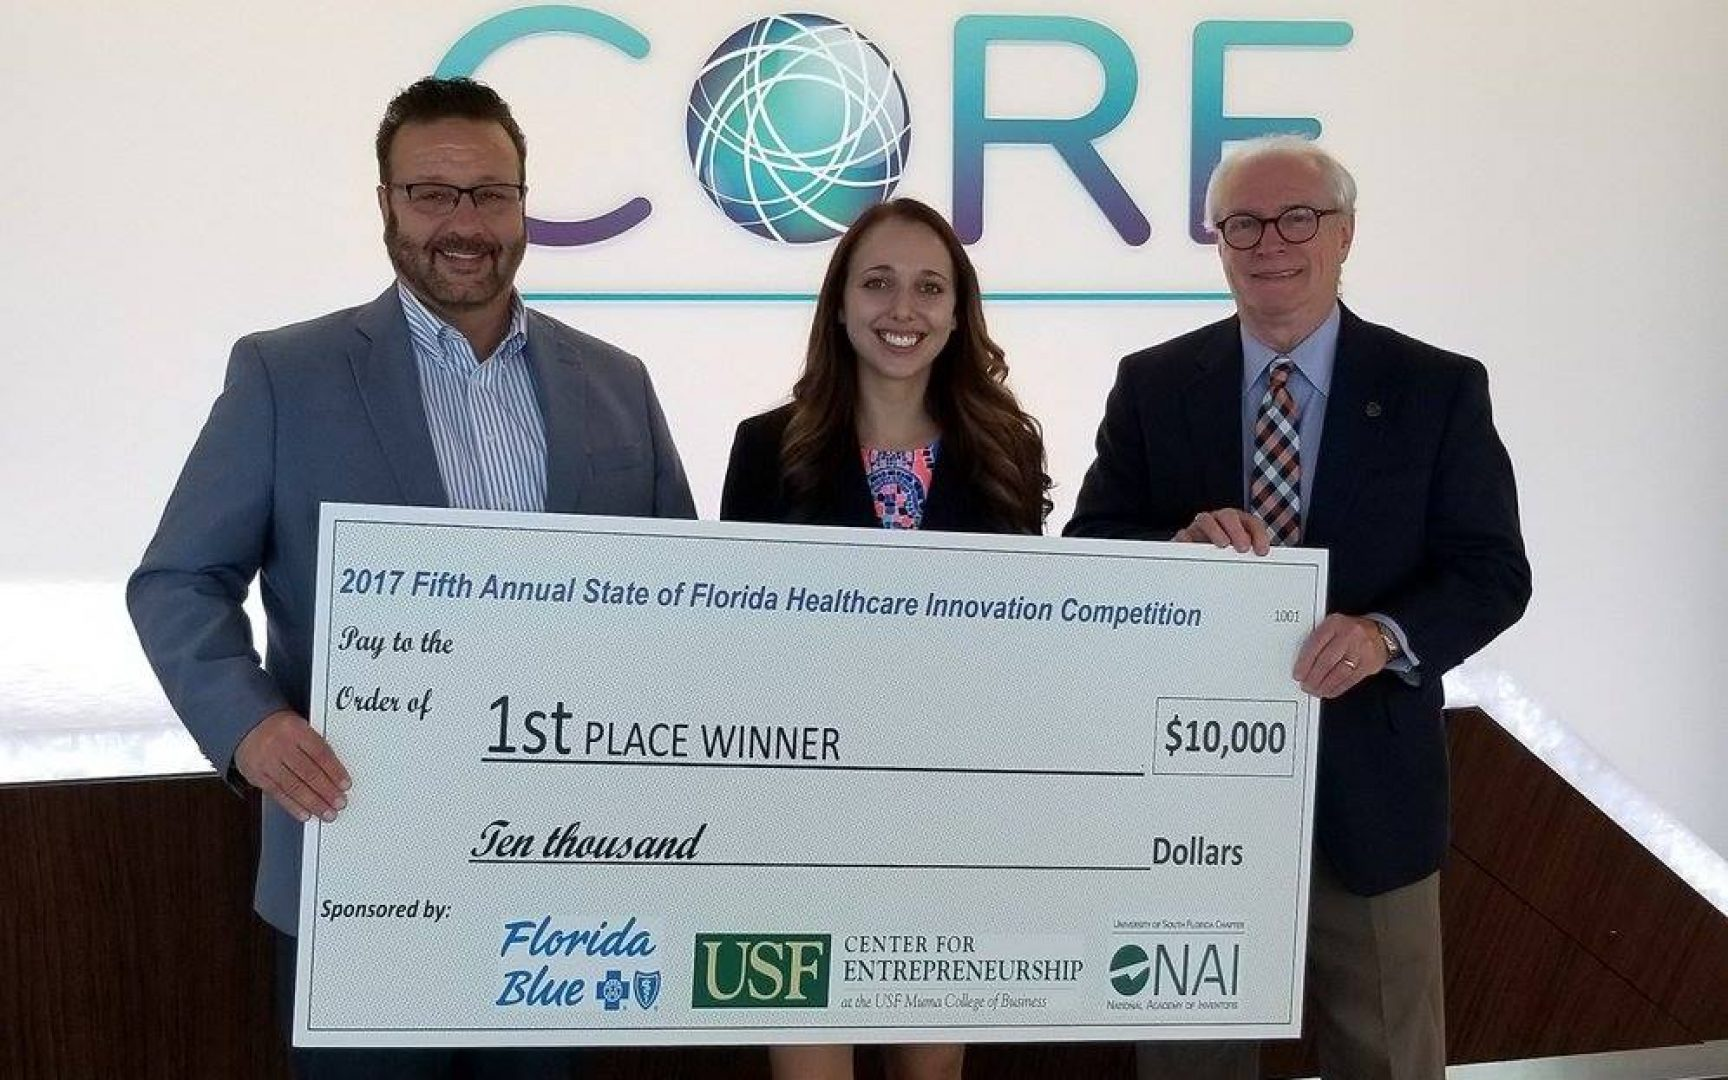 From left: Florida Blue Market President David Pizzo, Lauren Koff, and USF Center for Entrepreneurship Director Dr. Michael W. Fountain.